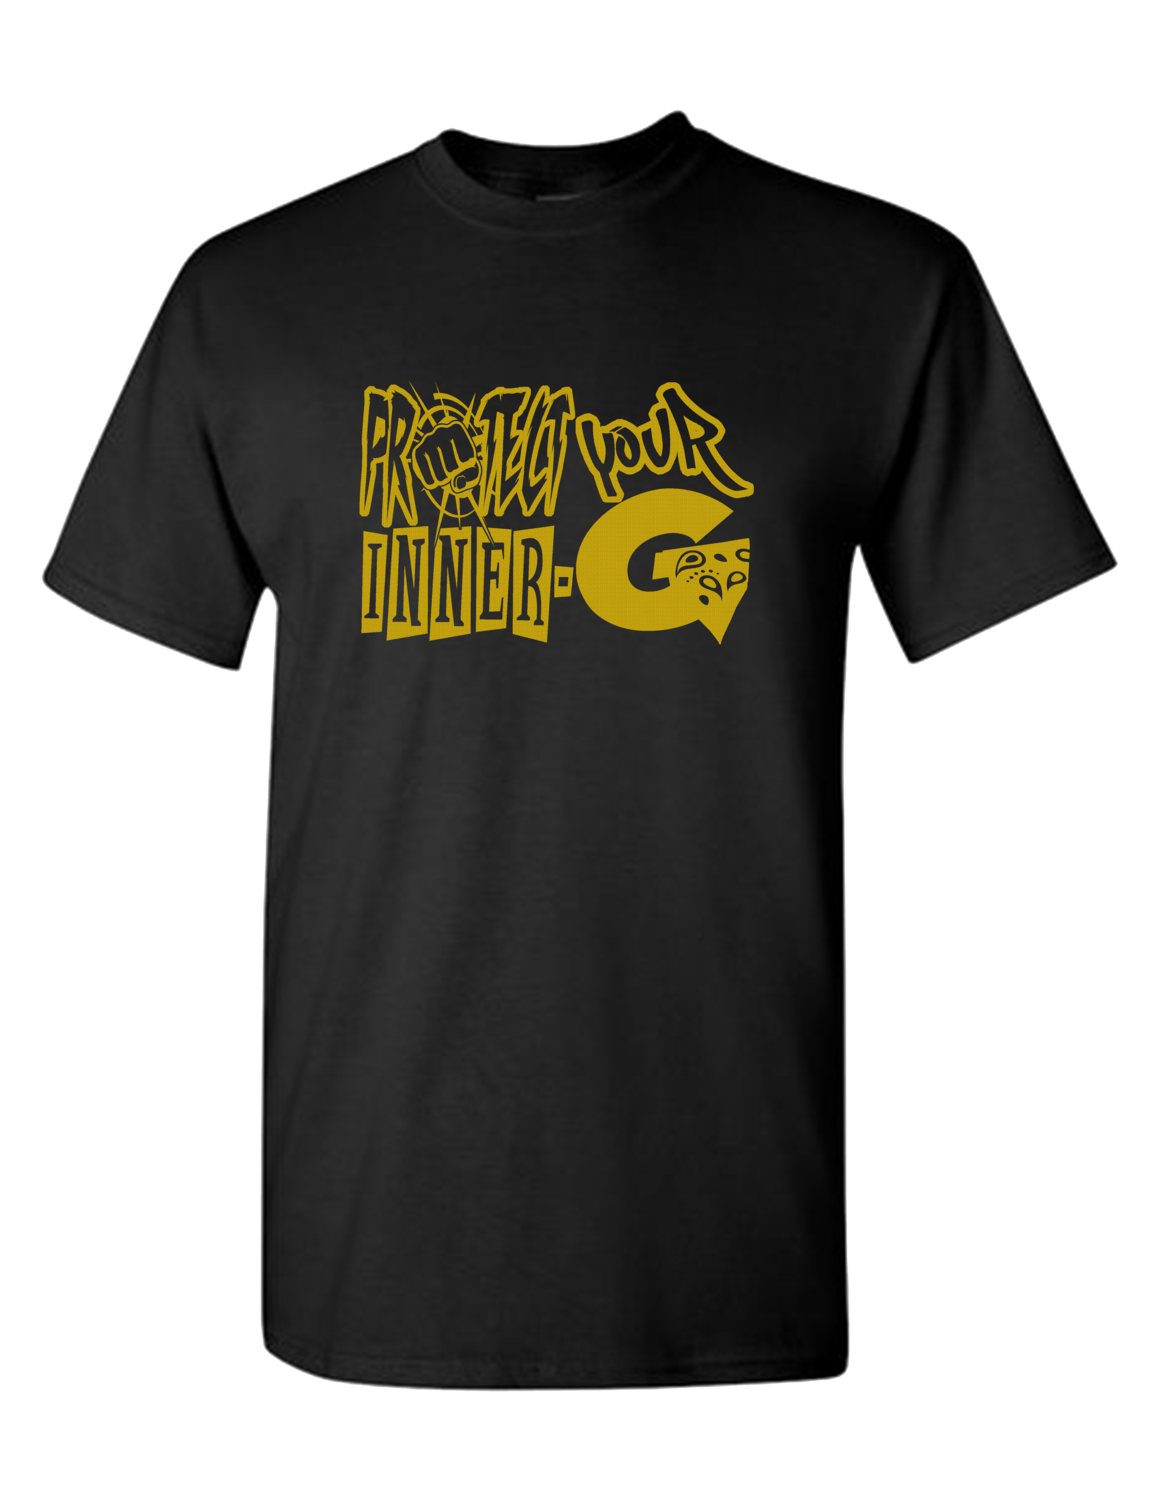 PROTECT YOUR INNER - G T-SHIRT + FREE GIFT